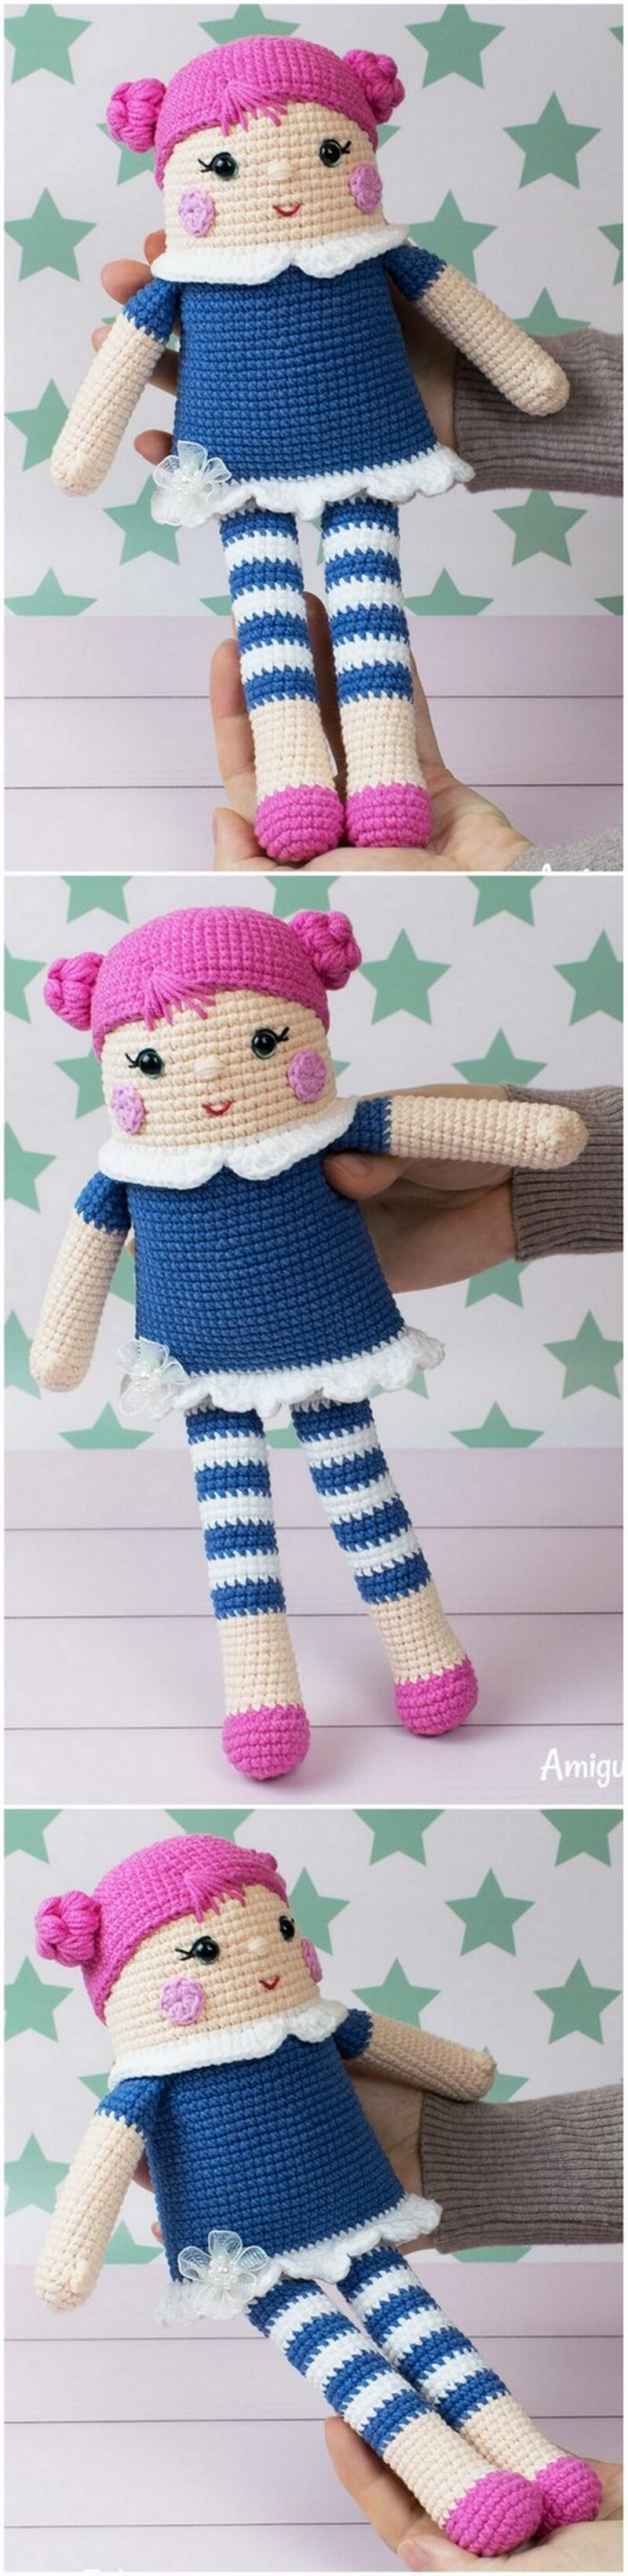 Crochet Amigurumi Doll Pattern (36)